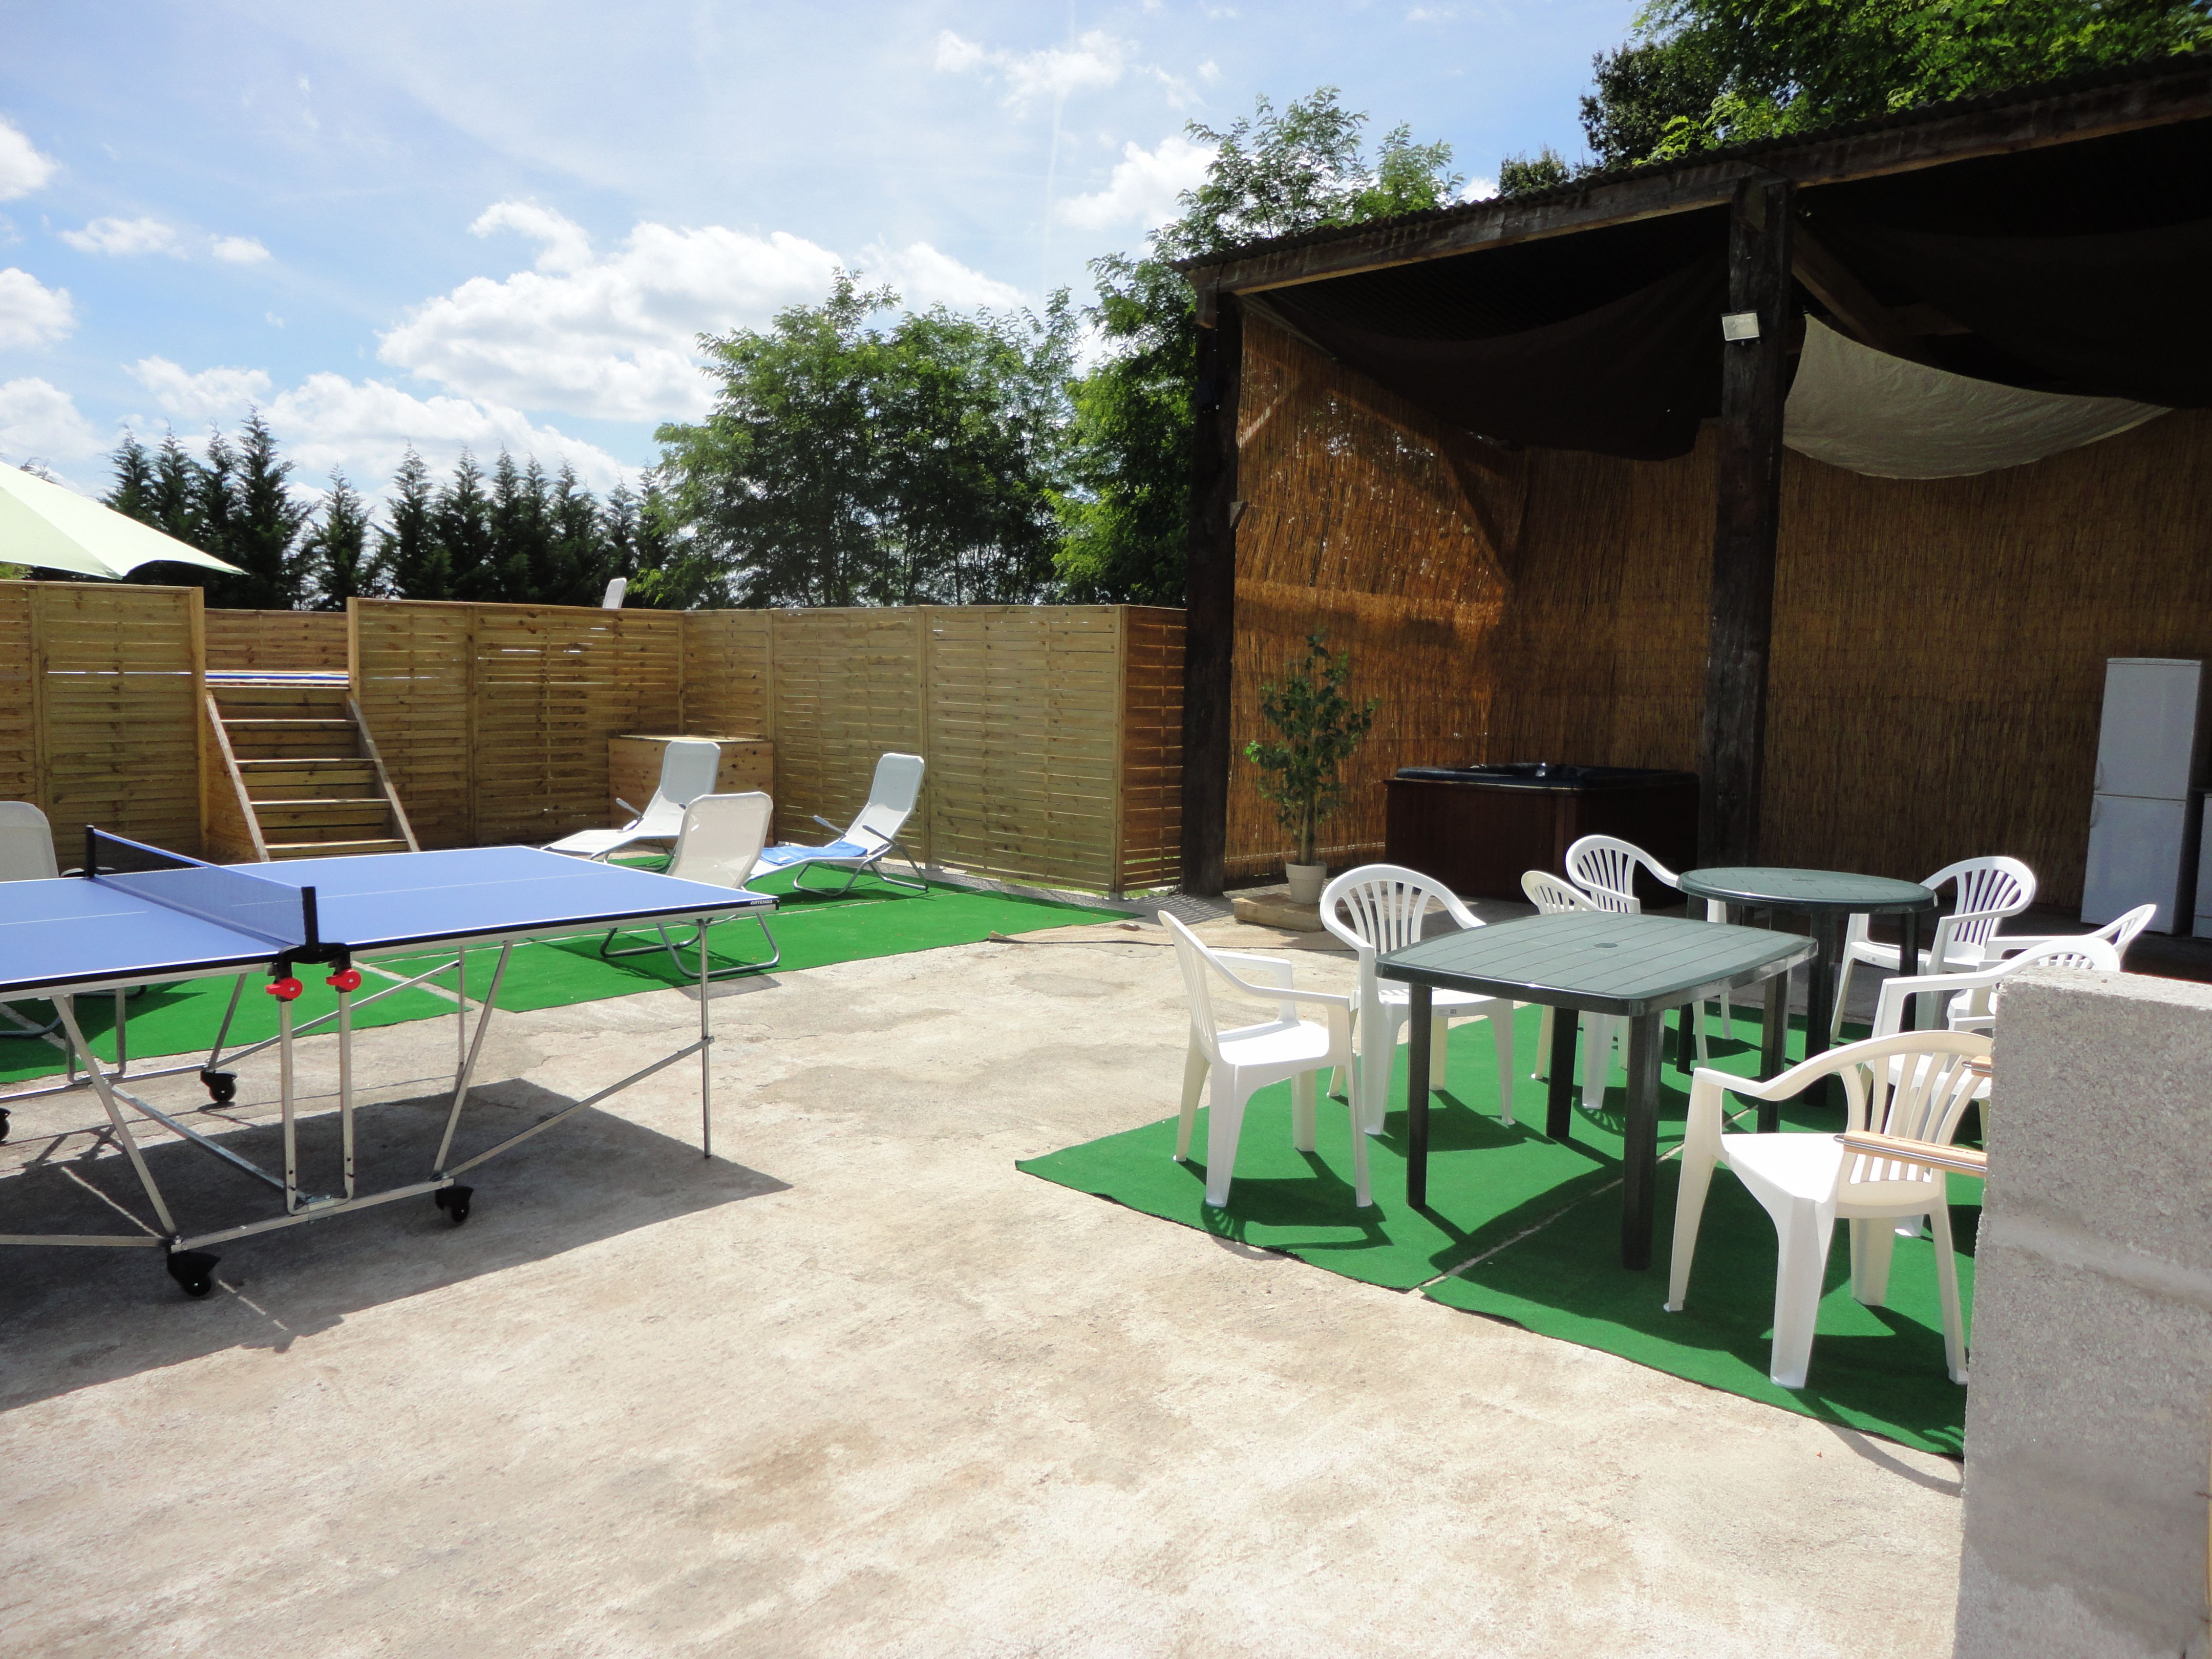 Leisure area with BBQ bar hot tub and table tennis etc